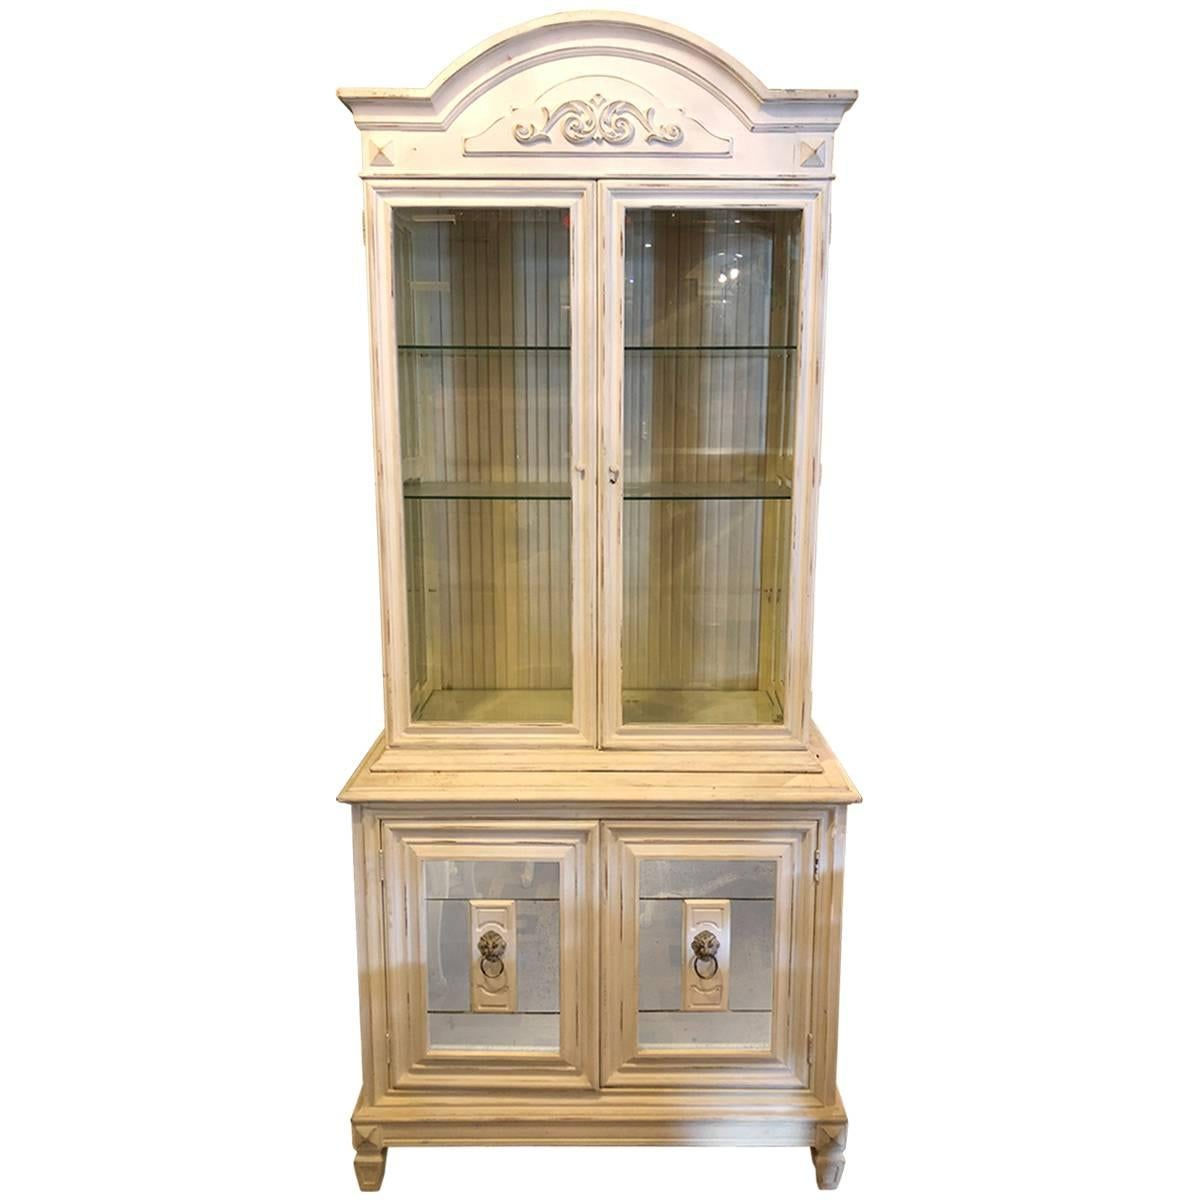 Swedish Style Distressed Paint Decorated Cabinet Having A Mirrored Bottom